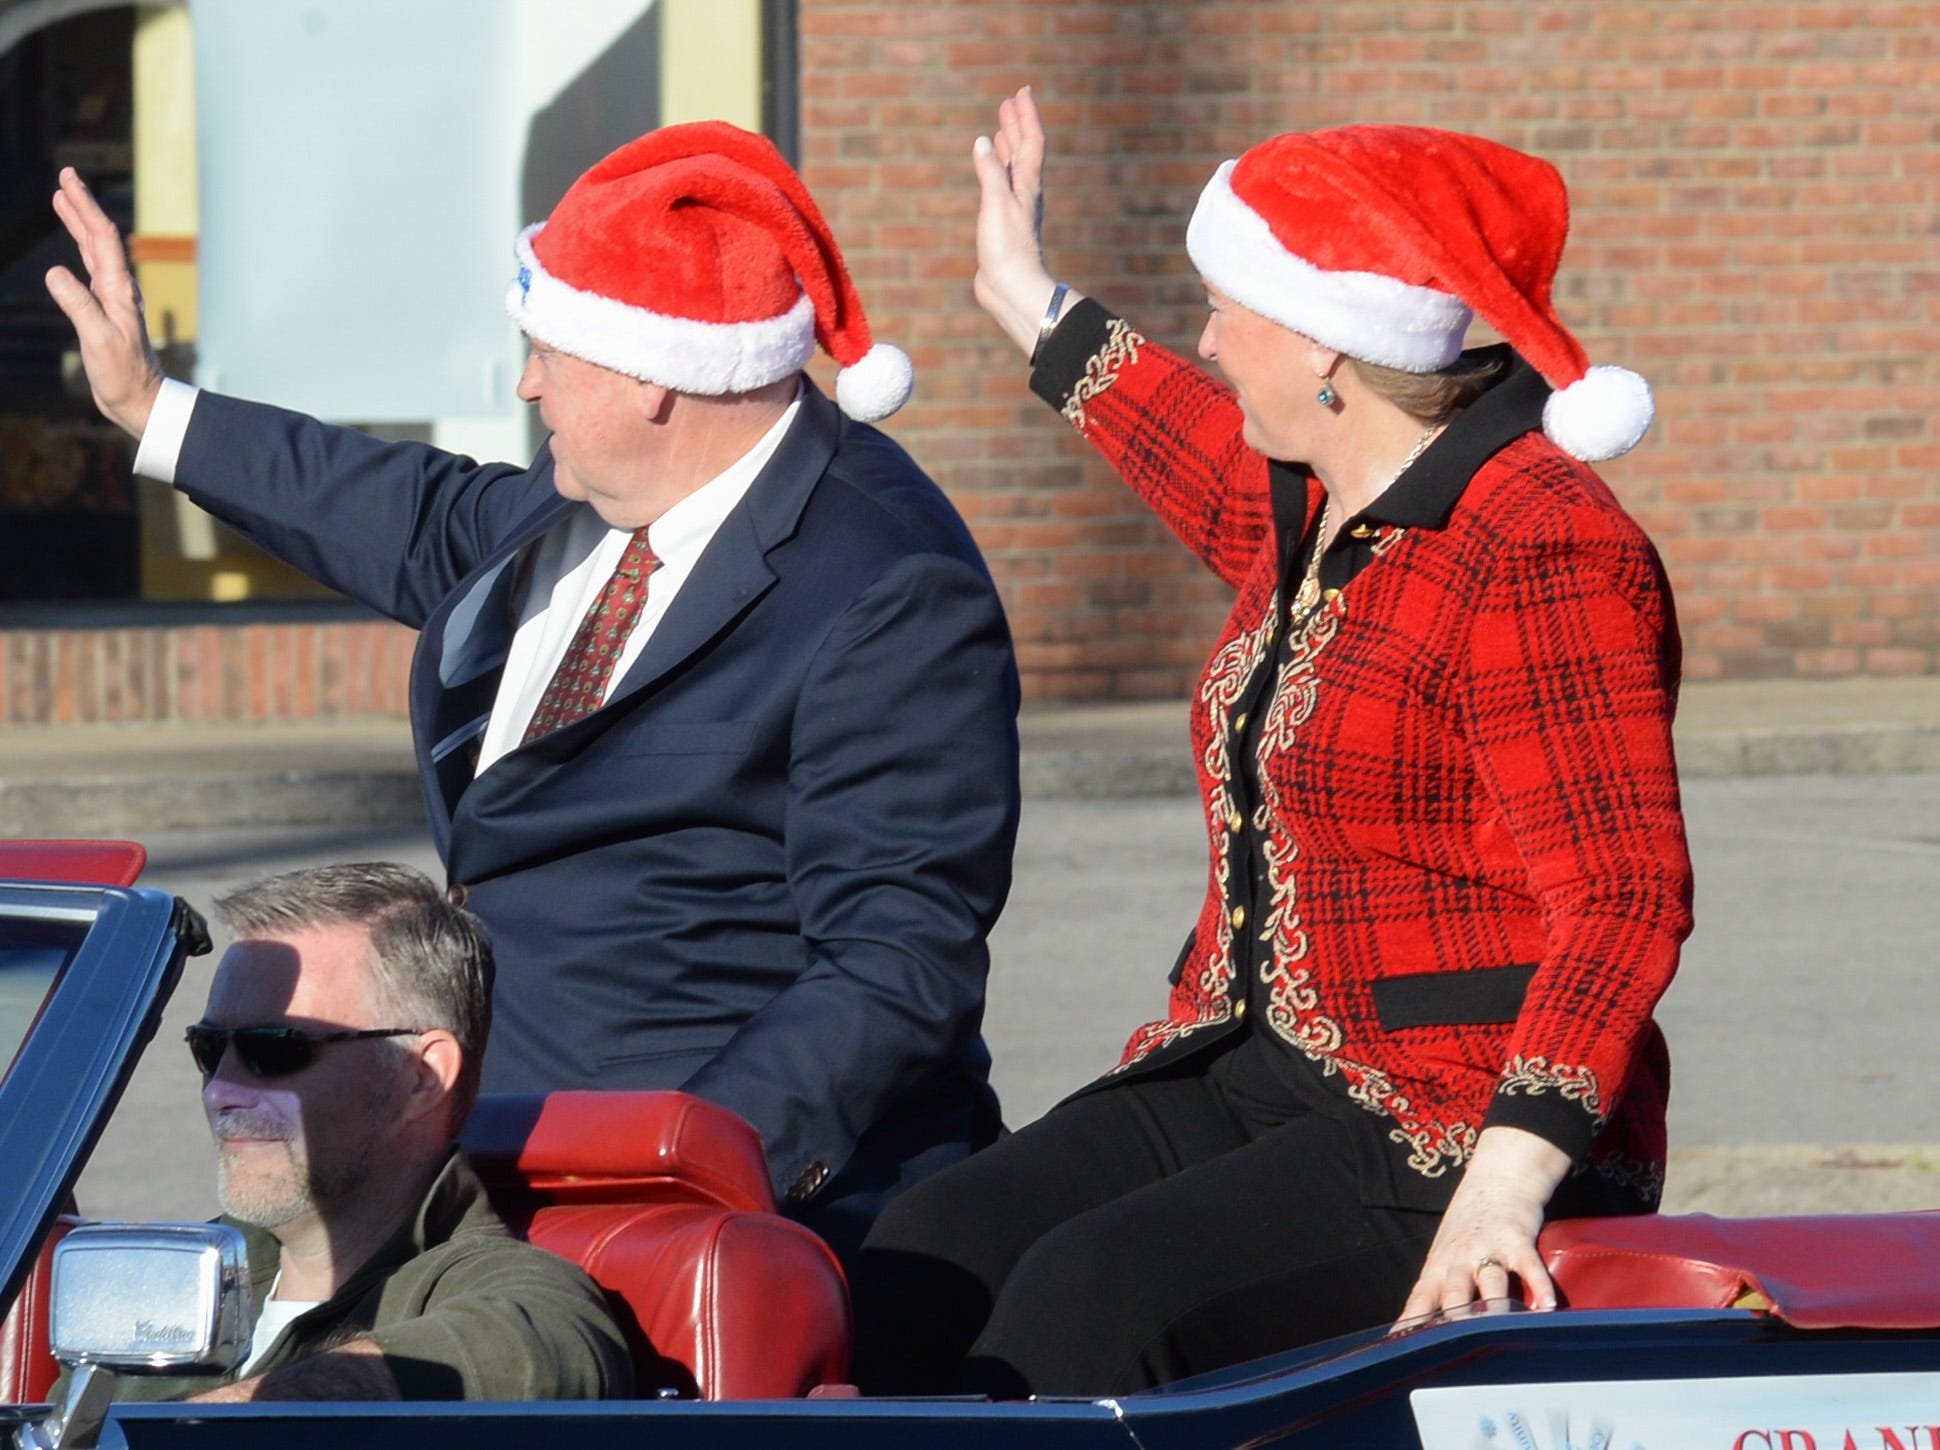 Mike Huckabee was the grand marshall for the Hendersonville Christmas Parade on Sunday, Dec. 2.